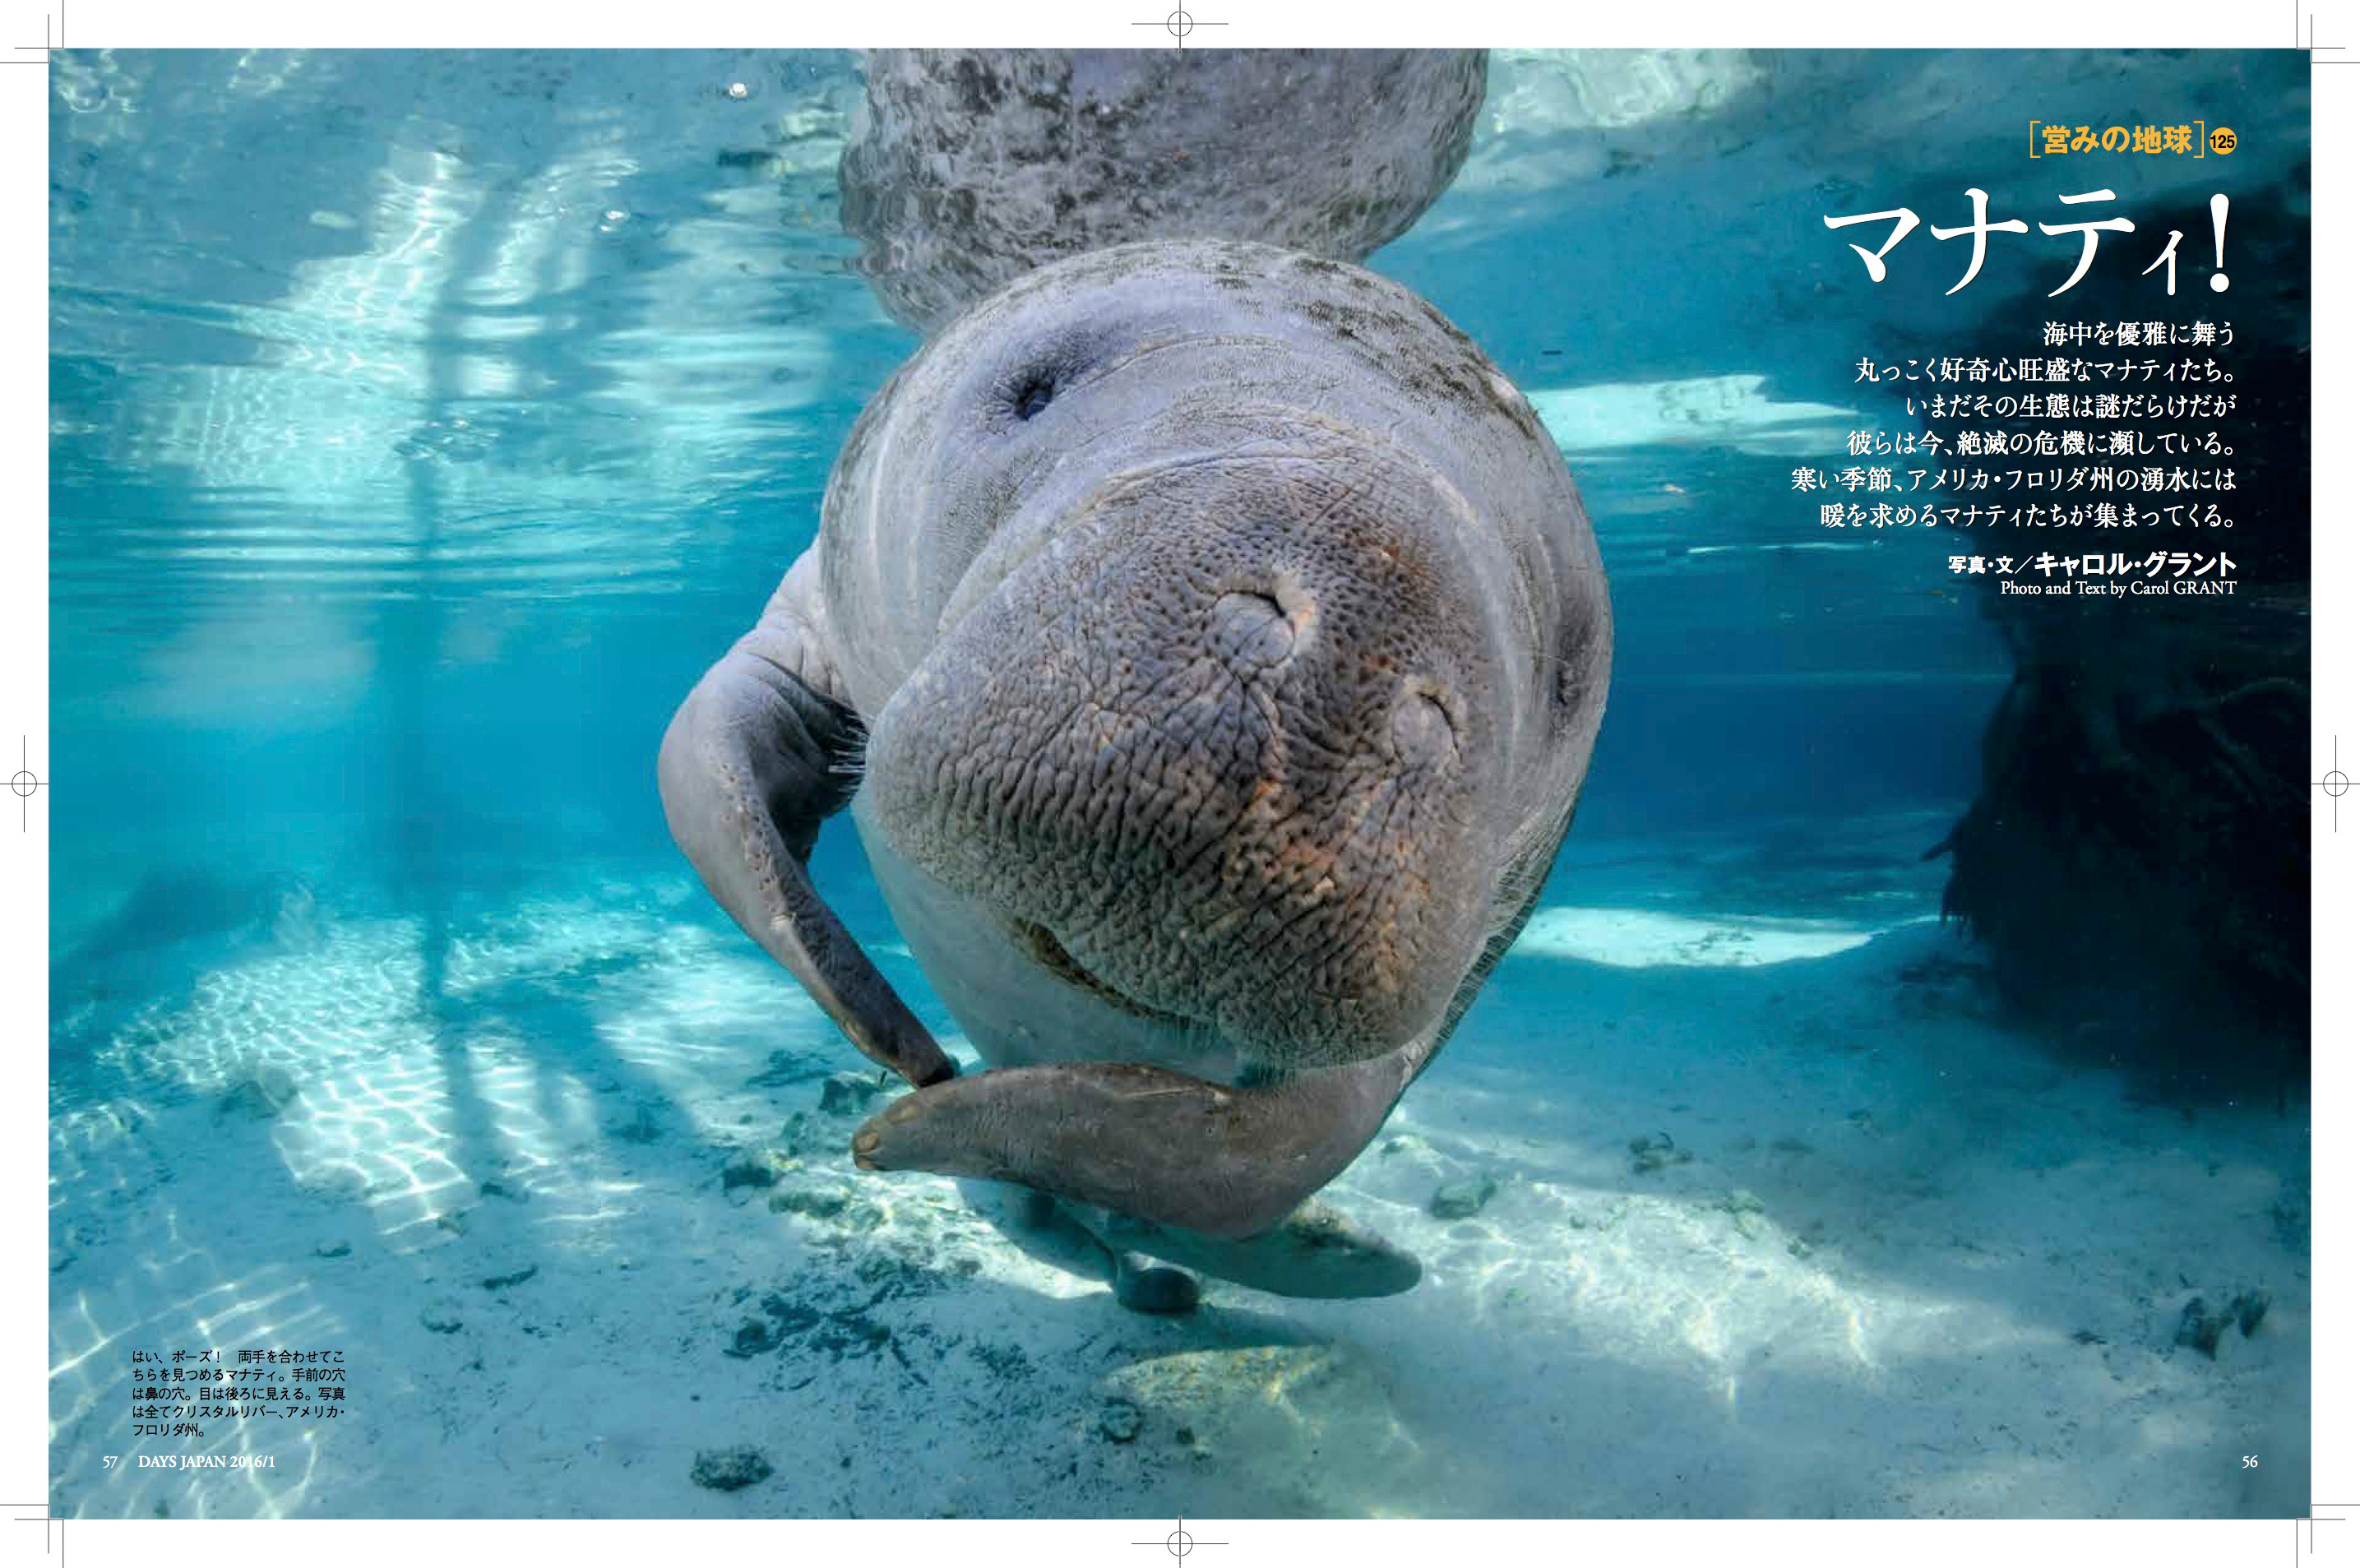 Days Japan,page 1,manatee article,page 56